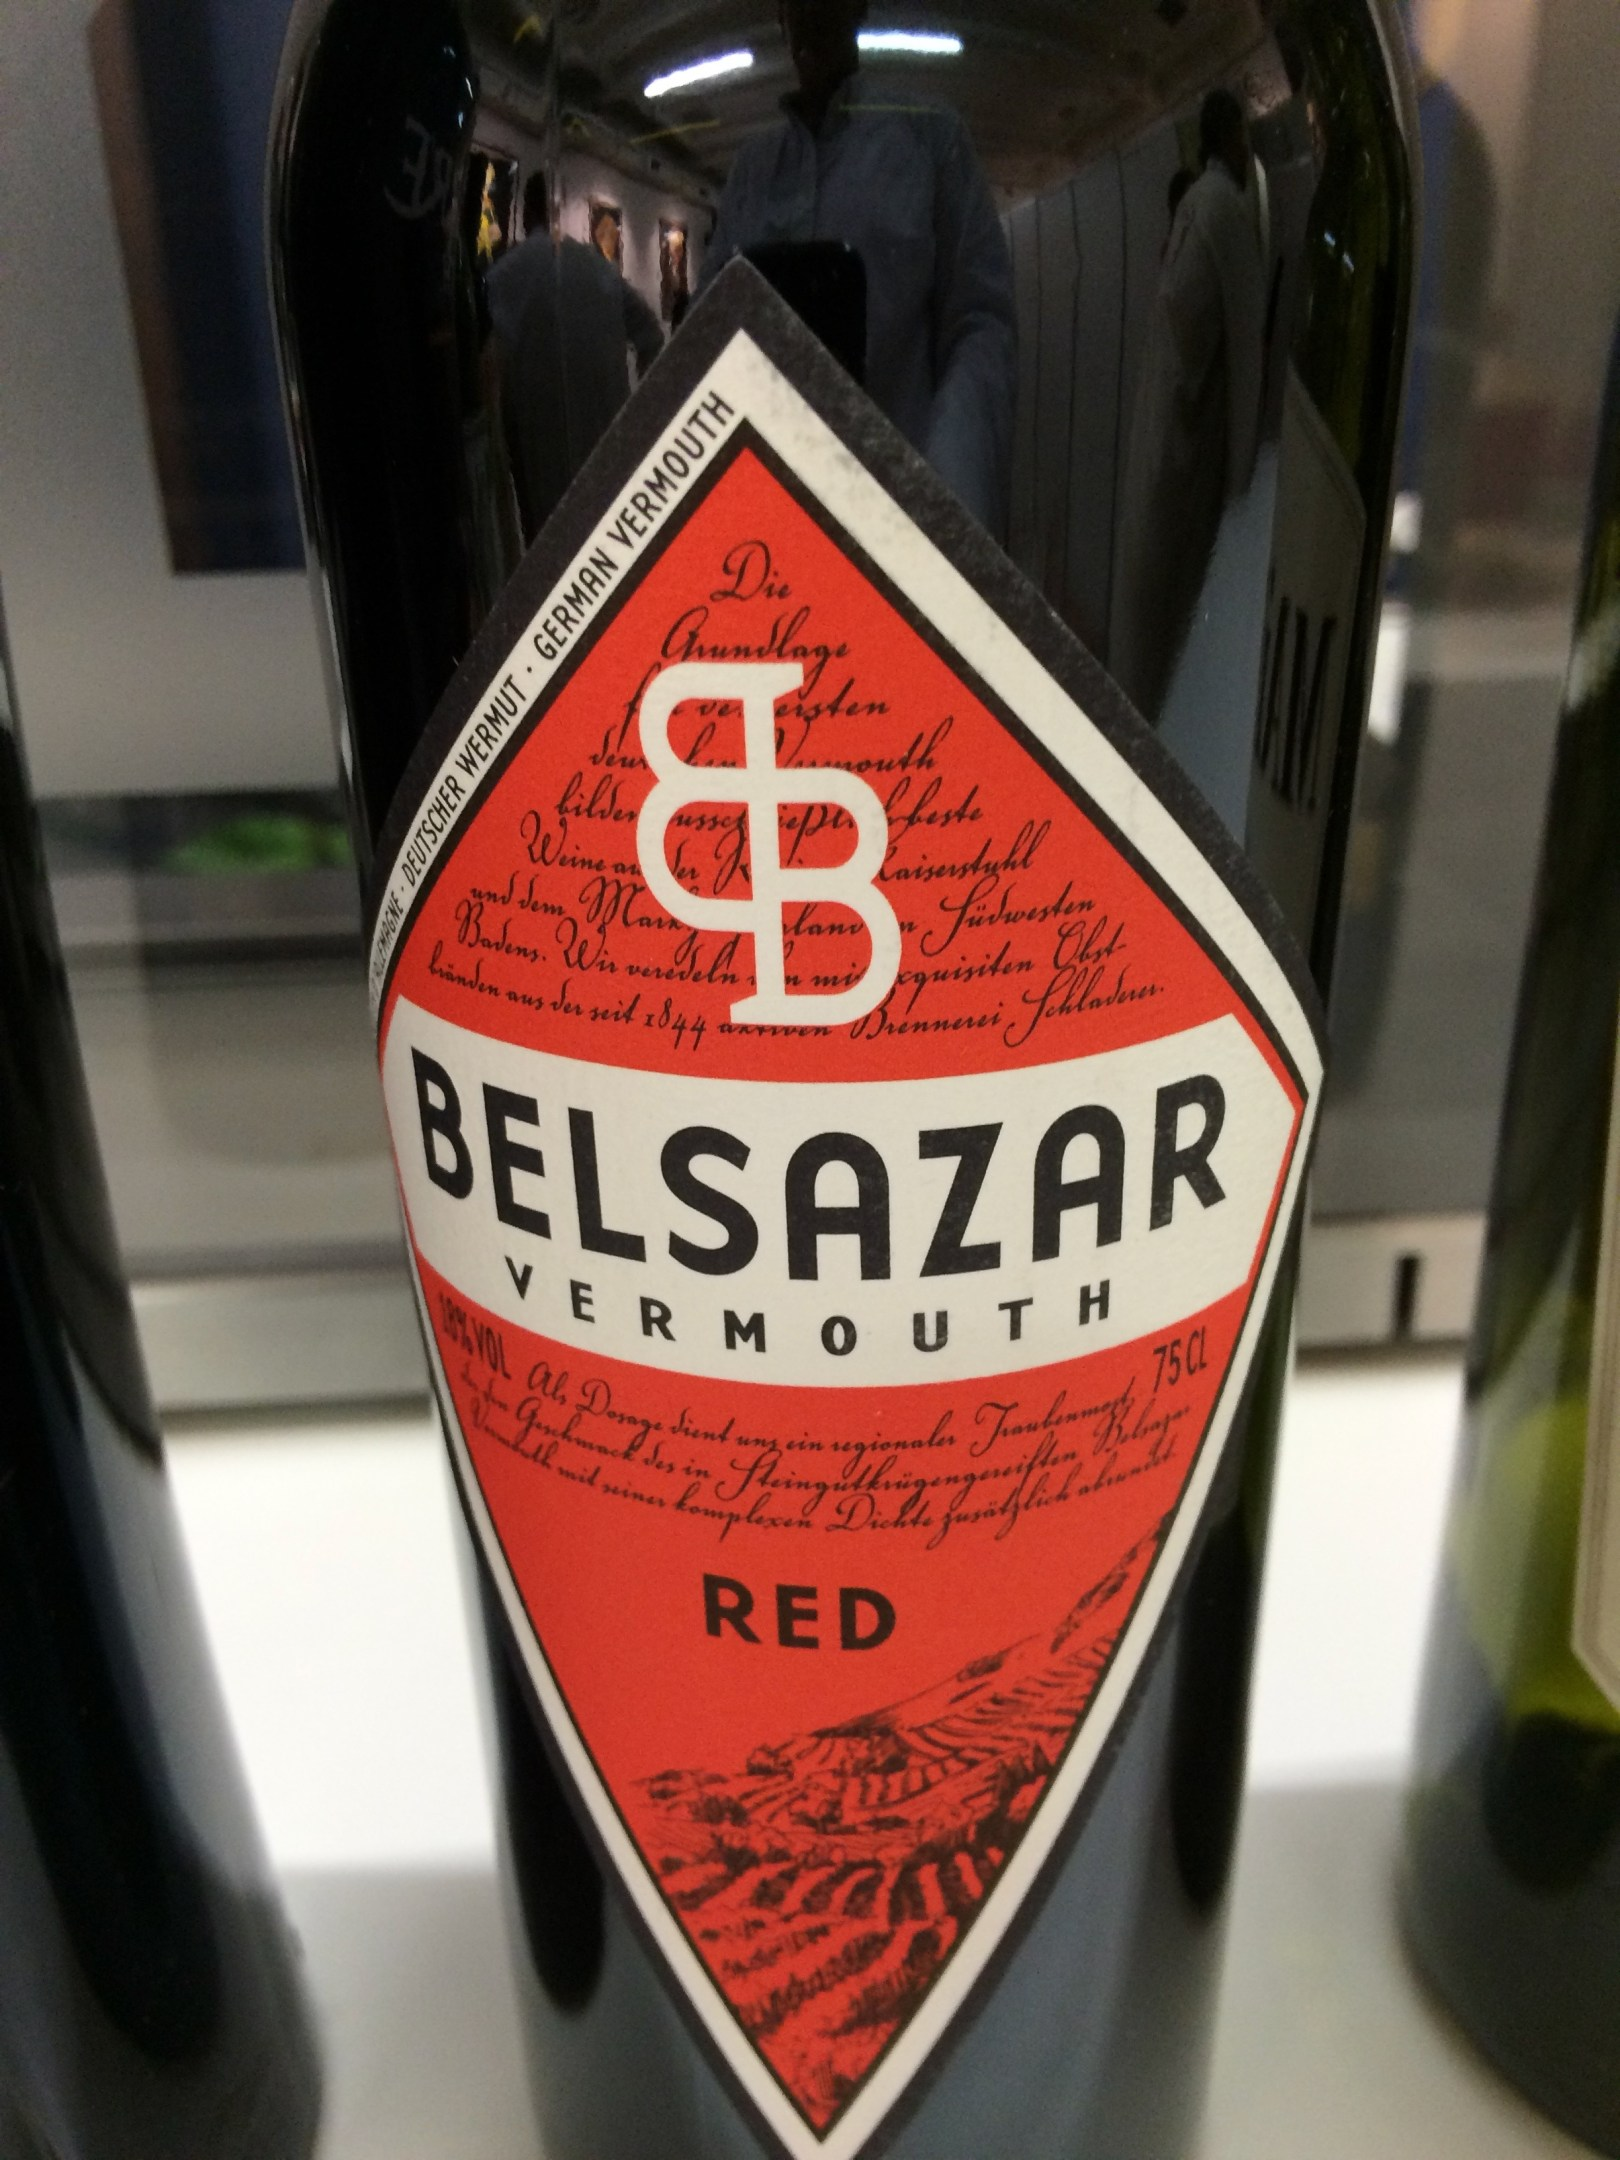 German-made vermouth from Belsazar